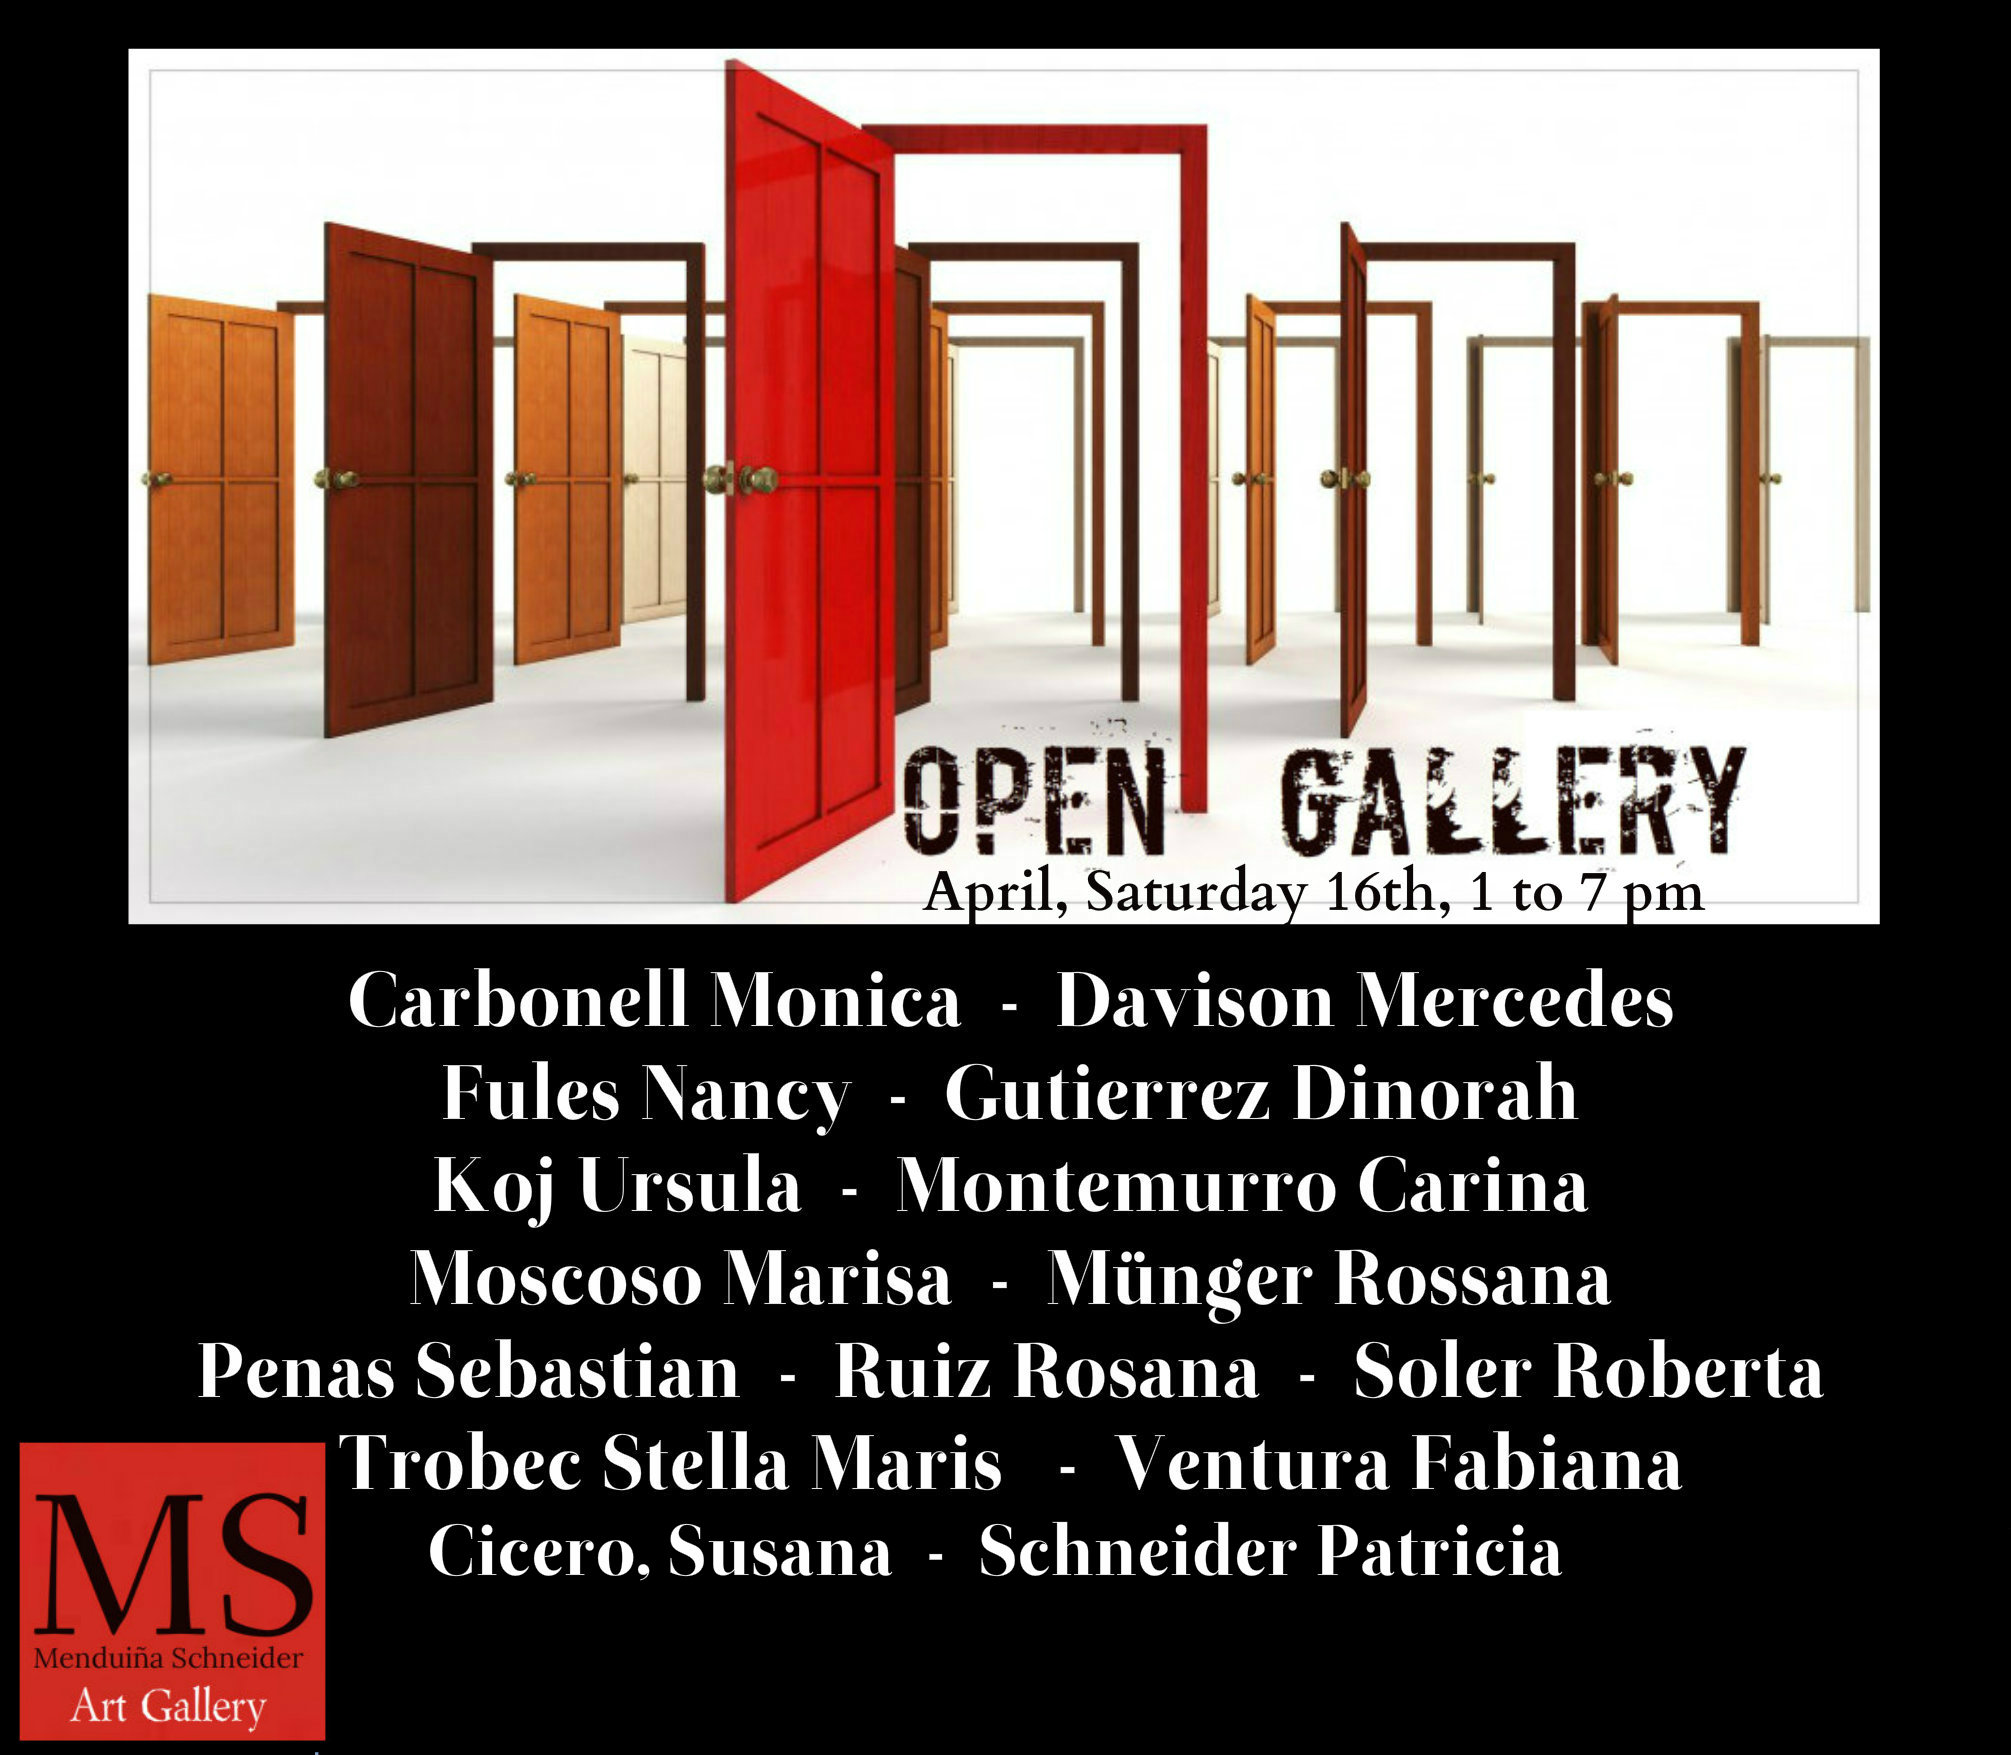 open gallery APRIL